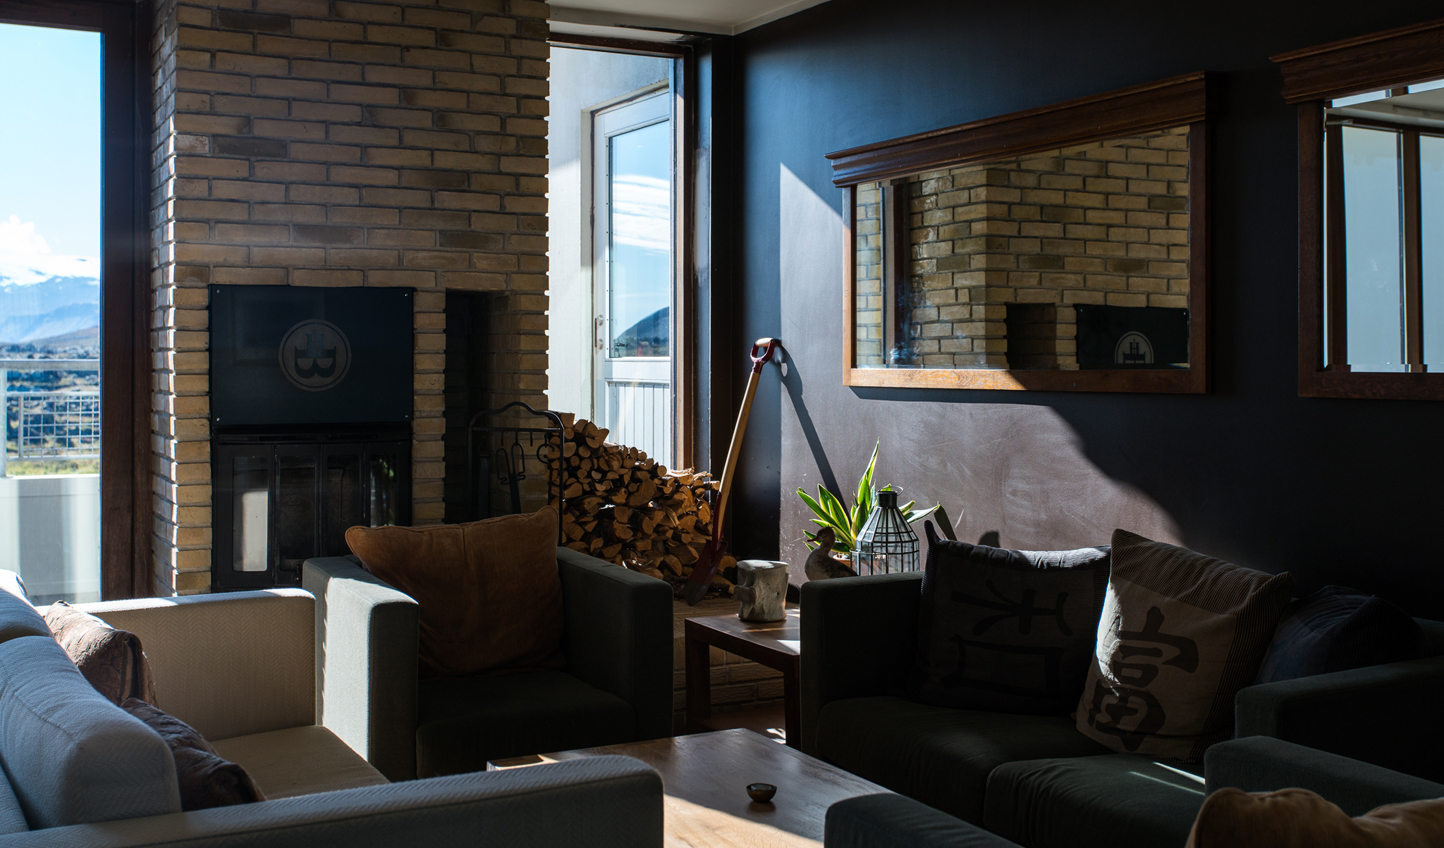 Shut out the outdoors and cosy up by the fire